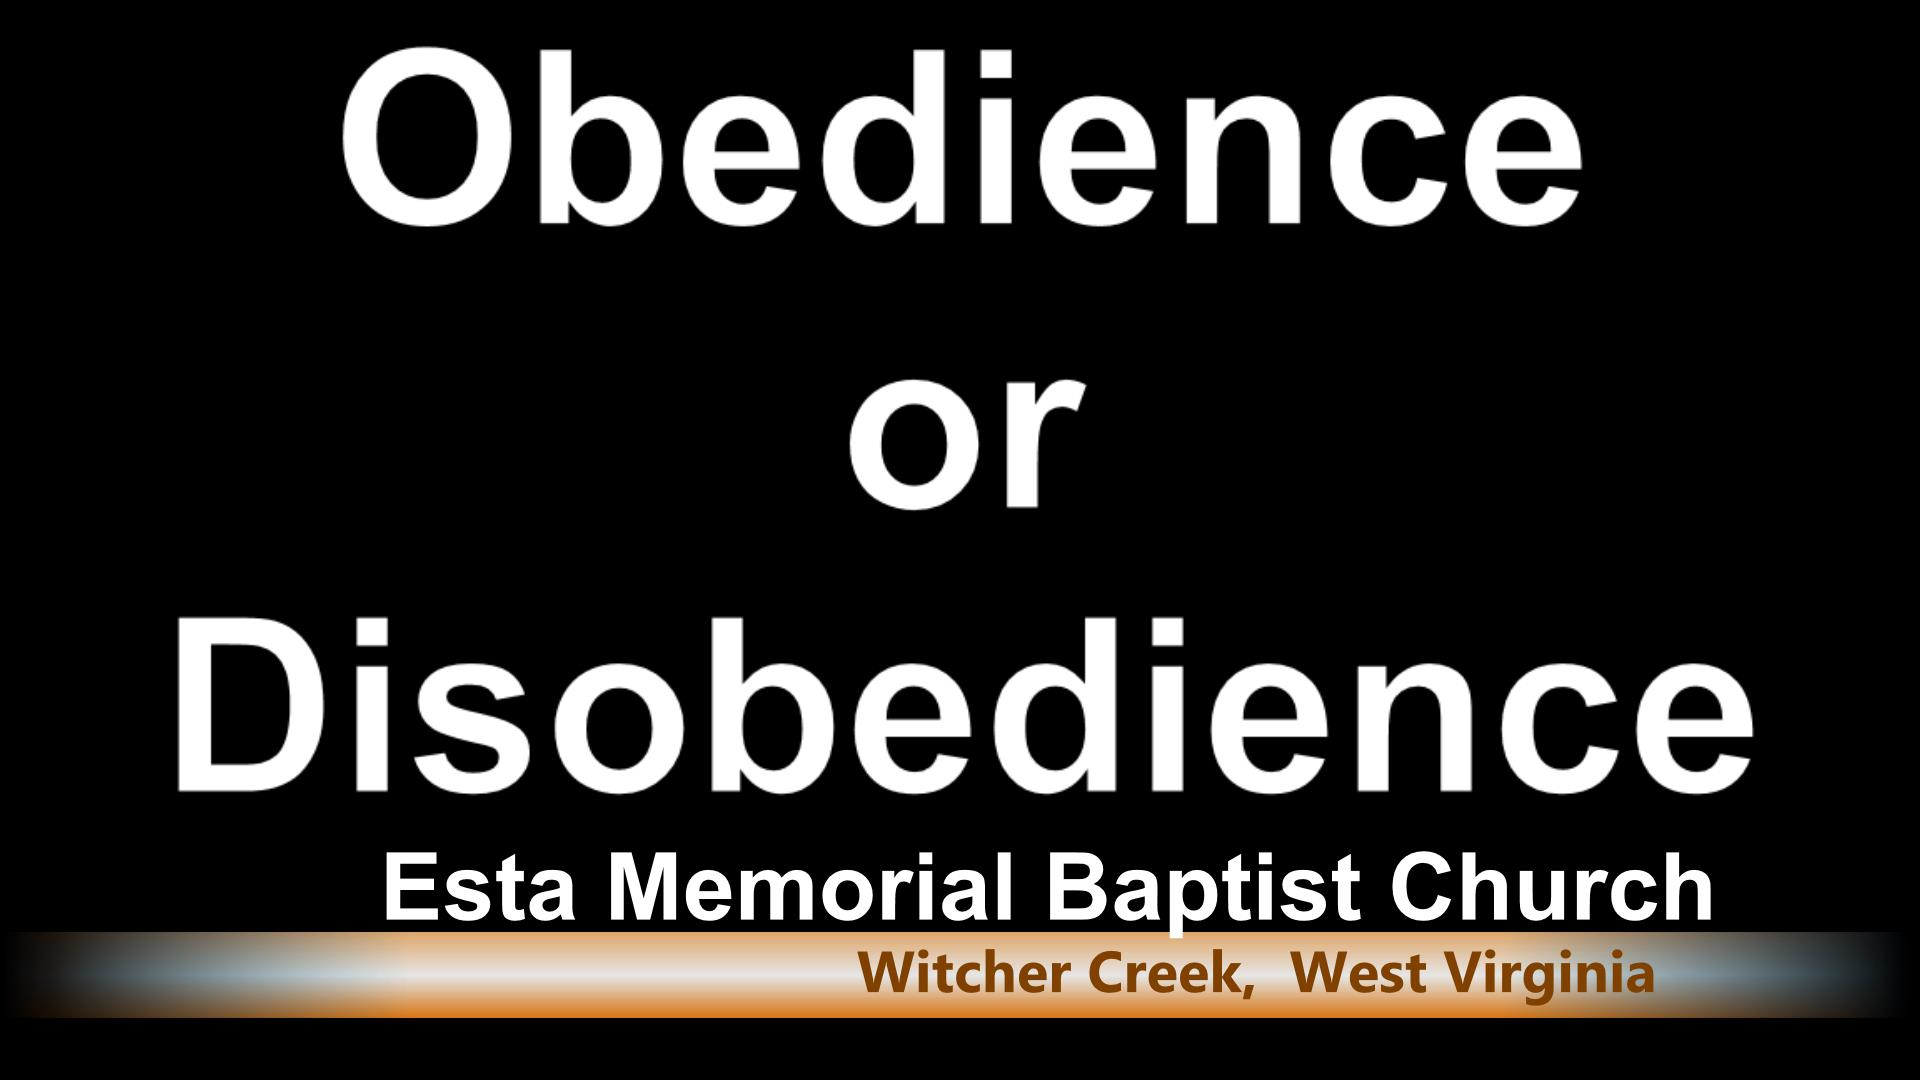 Obedience or Disobedience